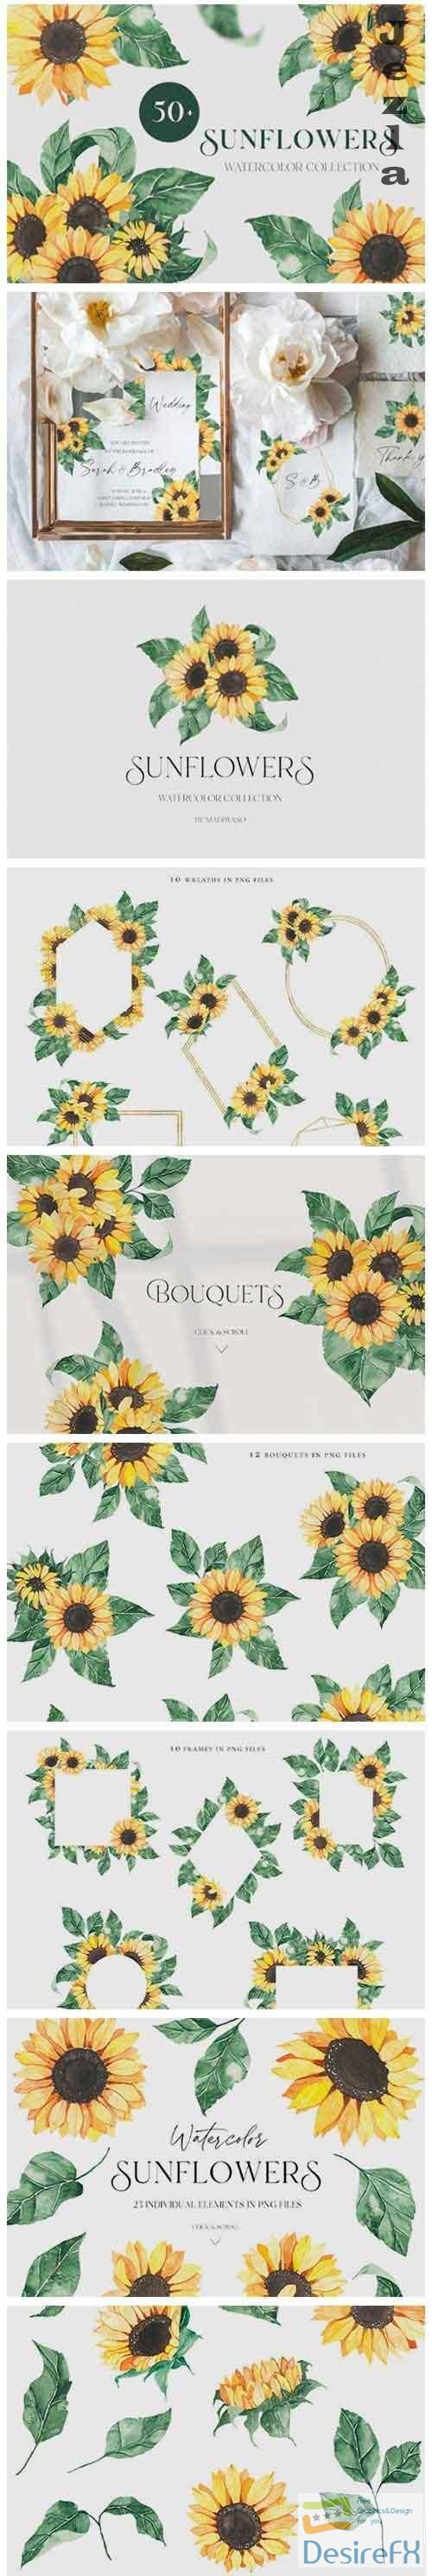 Watercolor Sunflowers collection - 5074626